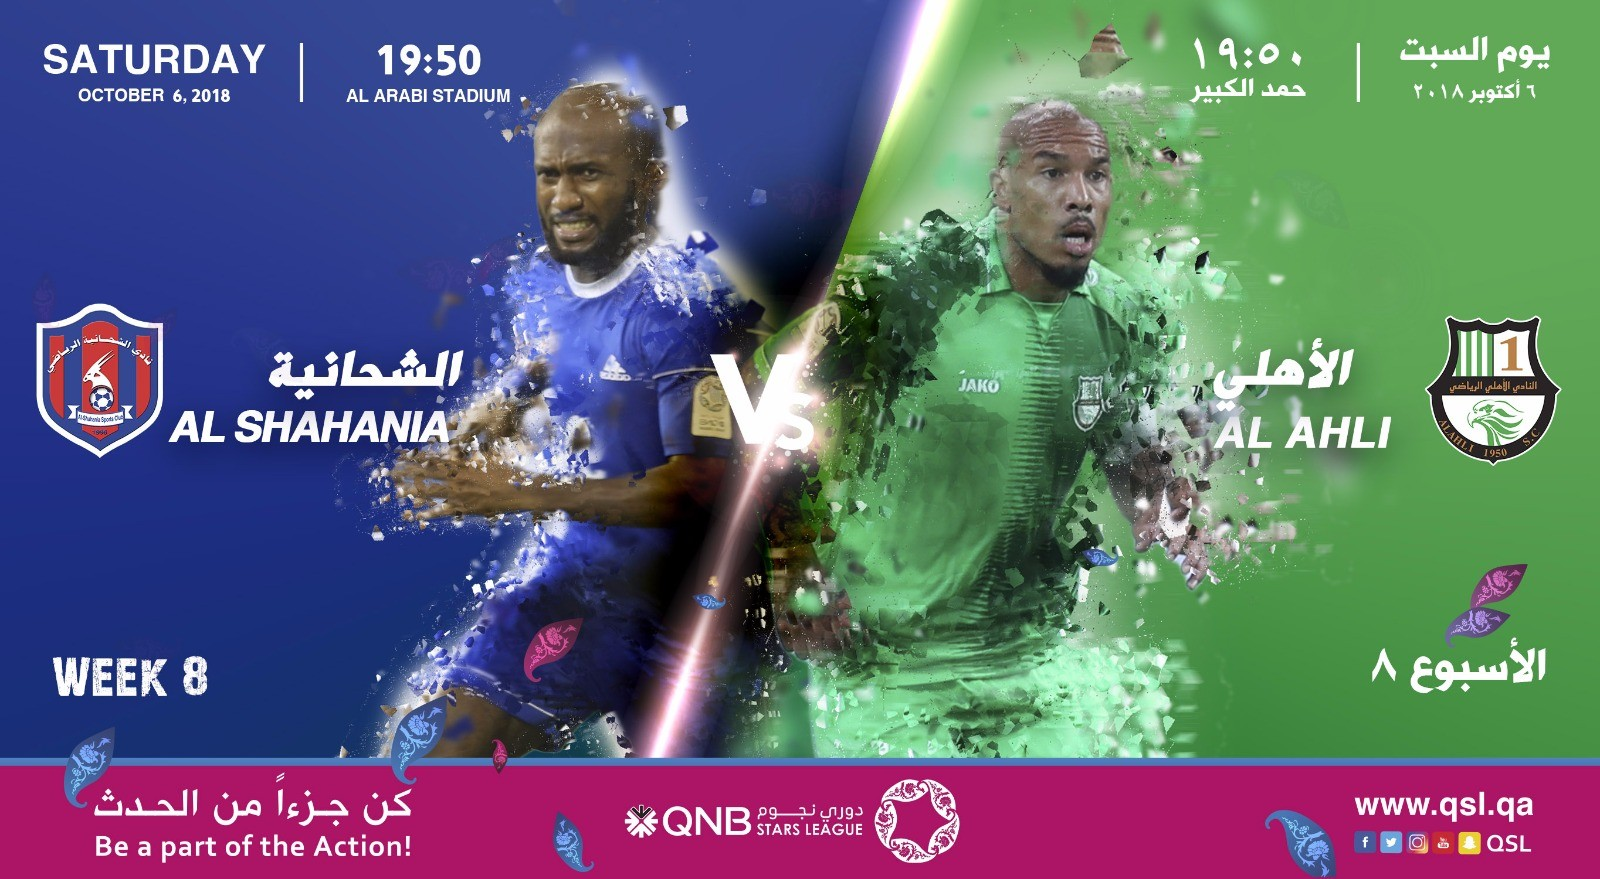 Al Shahania, Al Ahli look to make up for lost ground